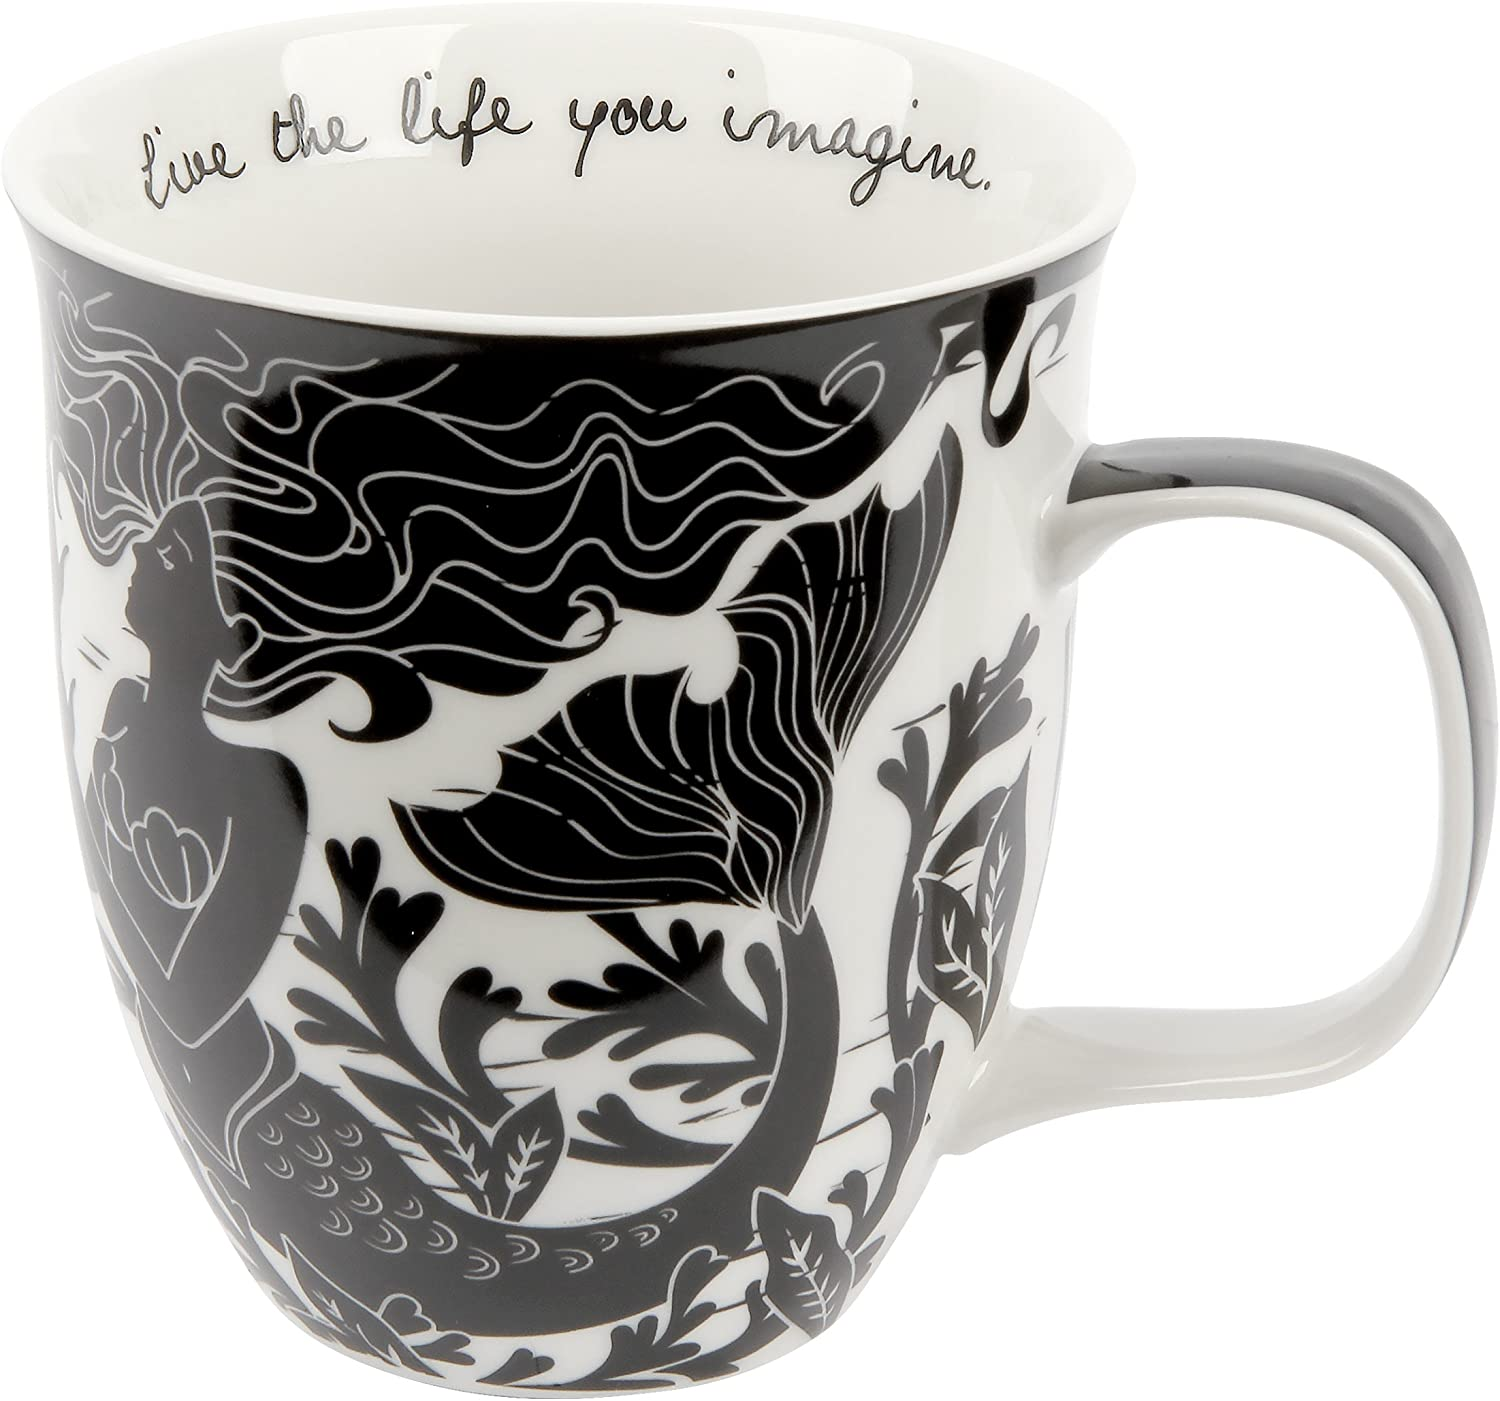 Black and White Mermaid Ceramic Mug